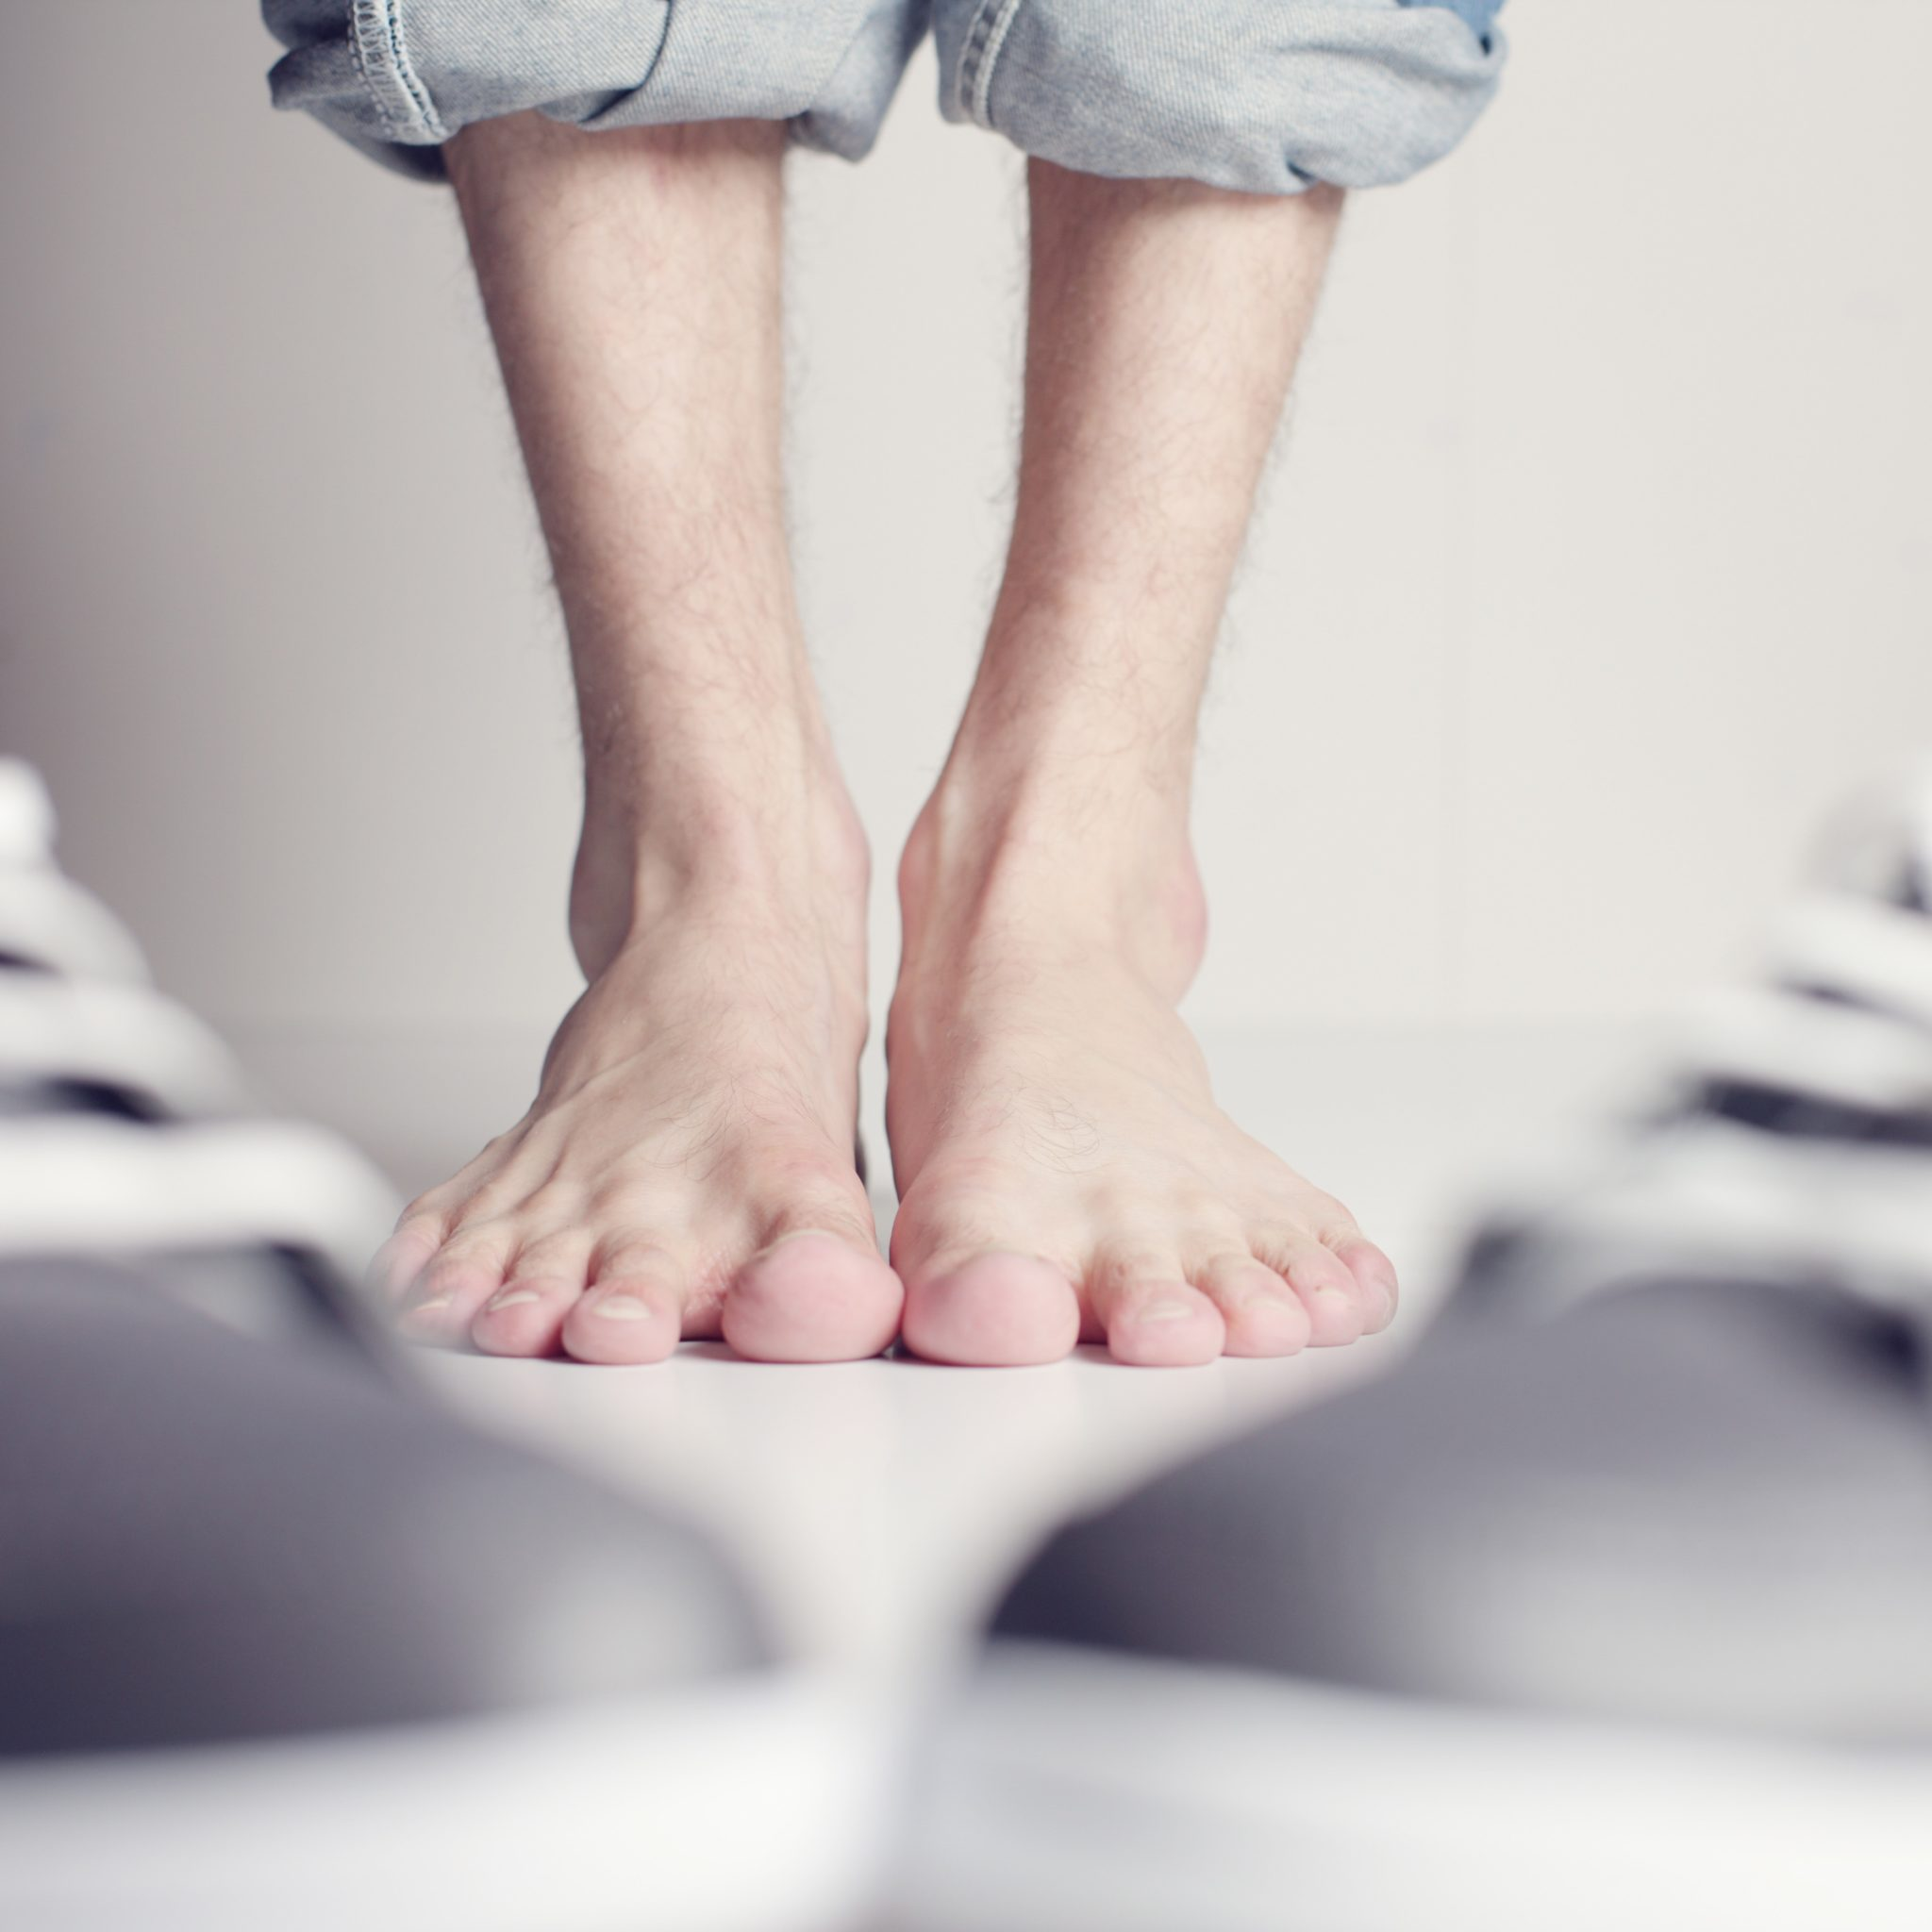 Foot wound management | Featured image for winter foot care tips.